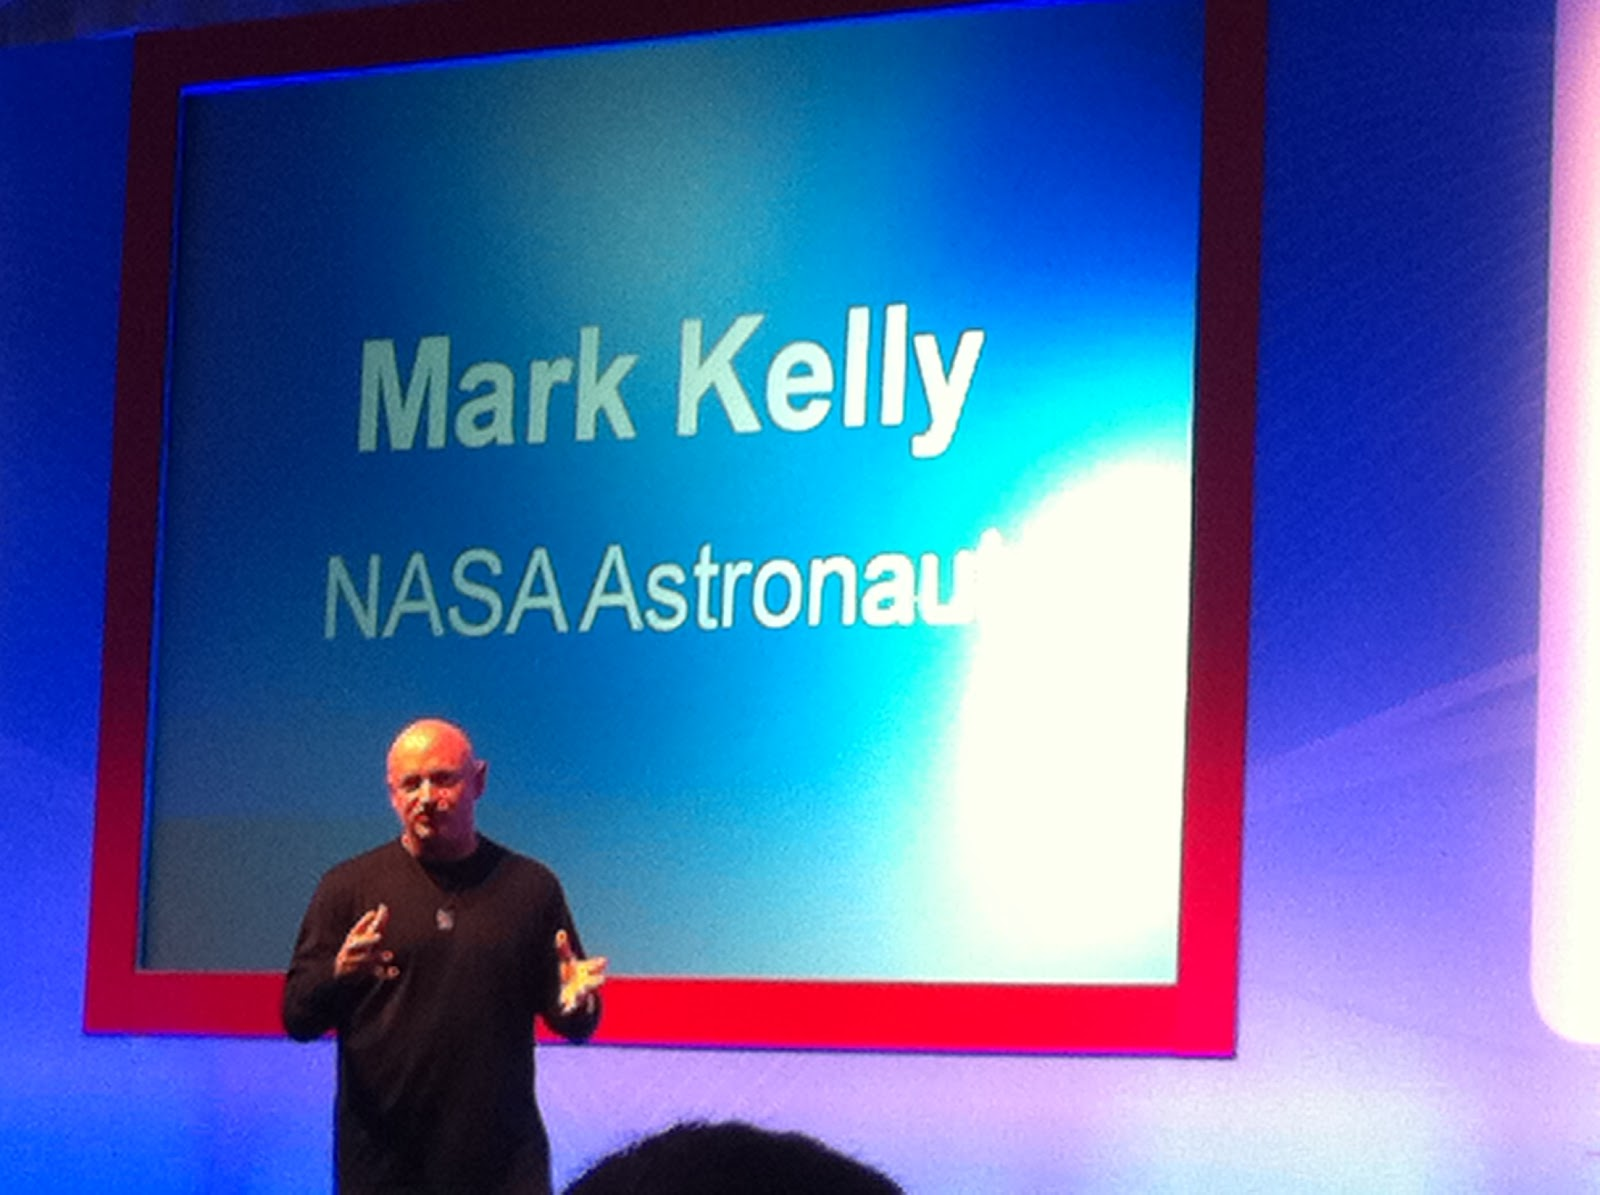 Mark Kelly speaking about his space mission